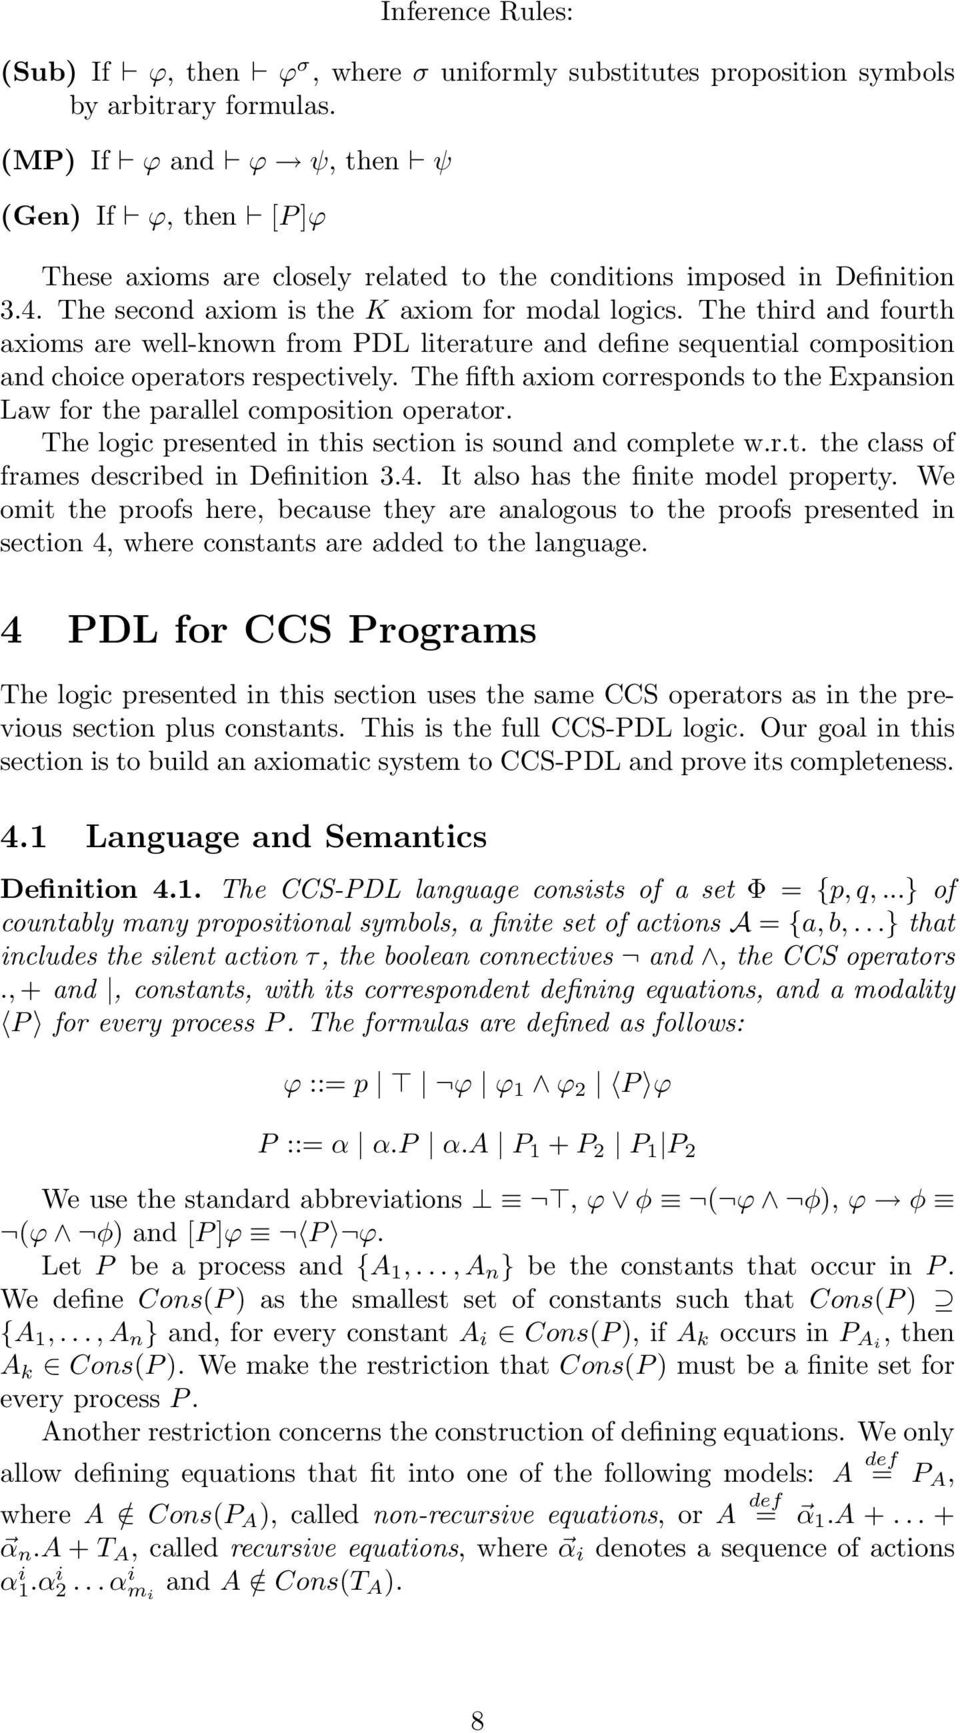 The third and fourth axioms are well-known from PDL literature and define sequential composition and choice operators respectively.